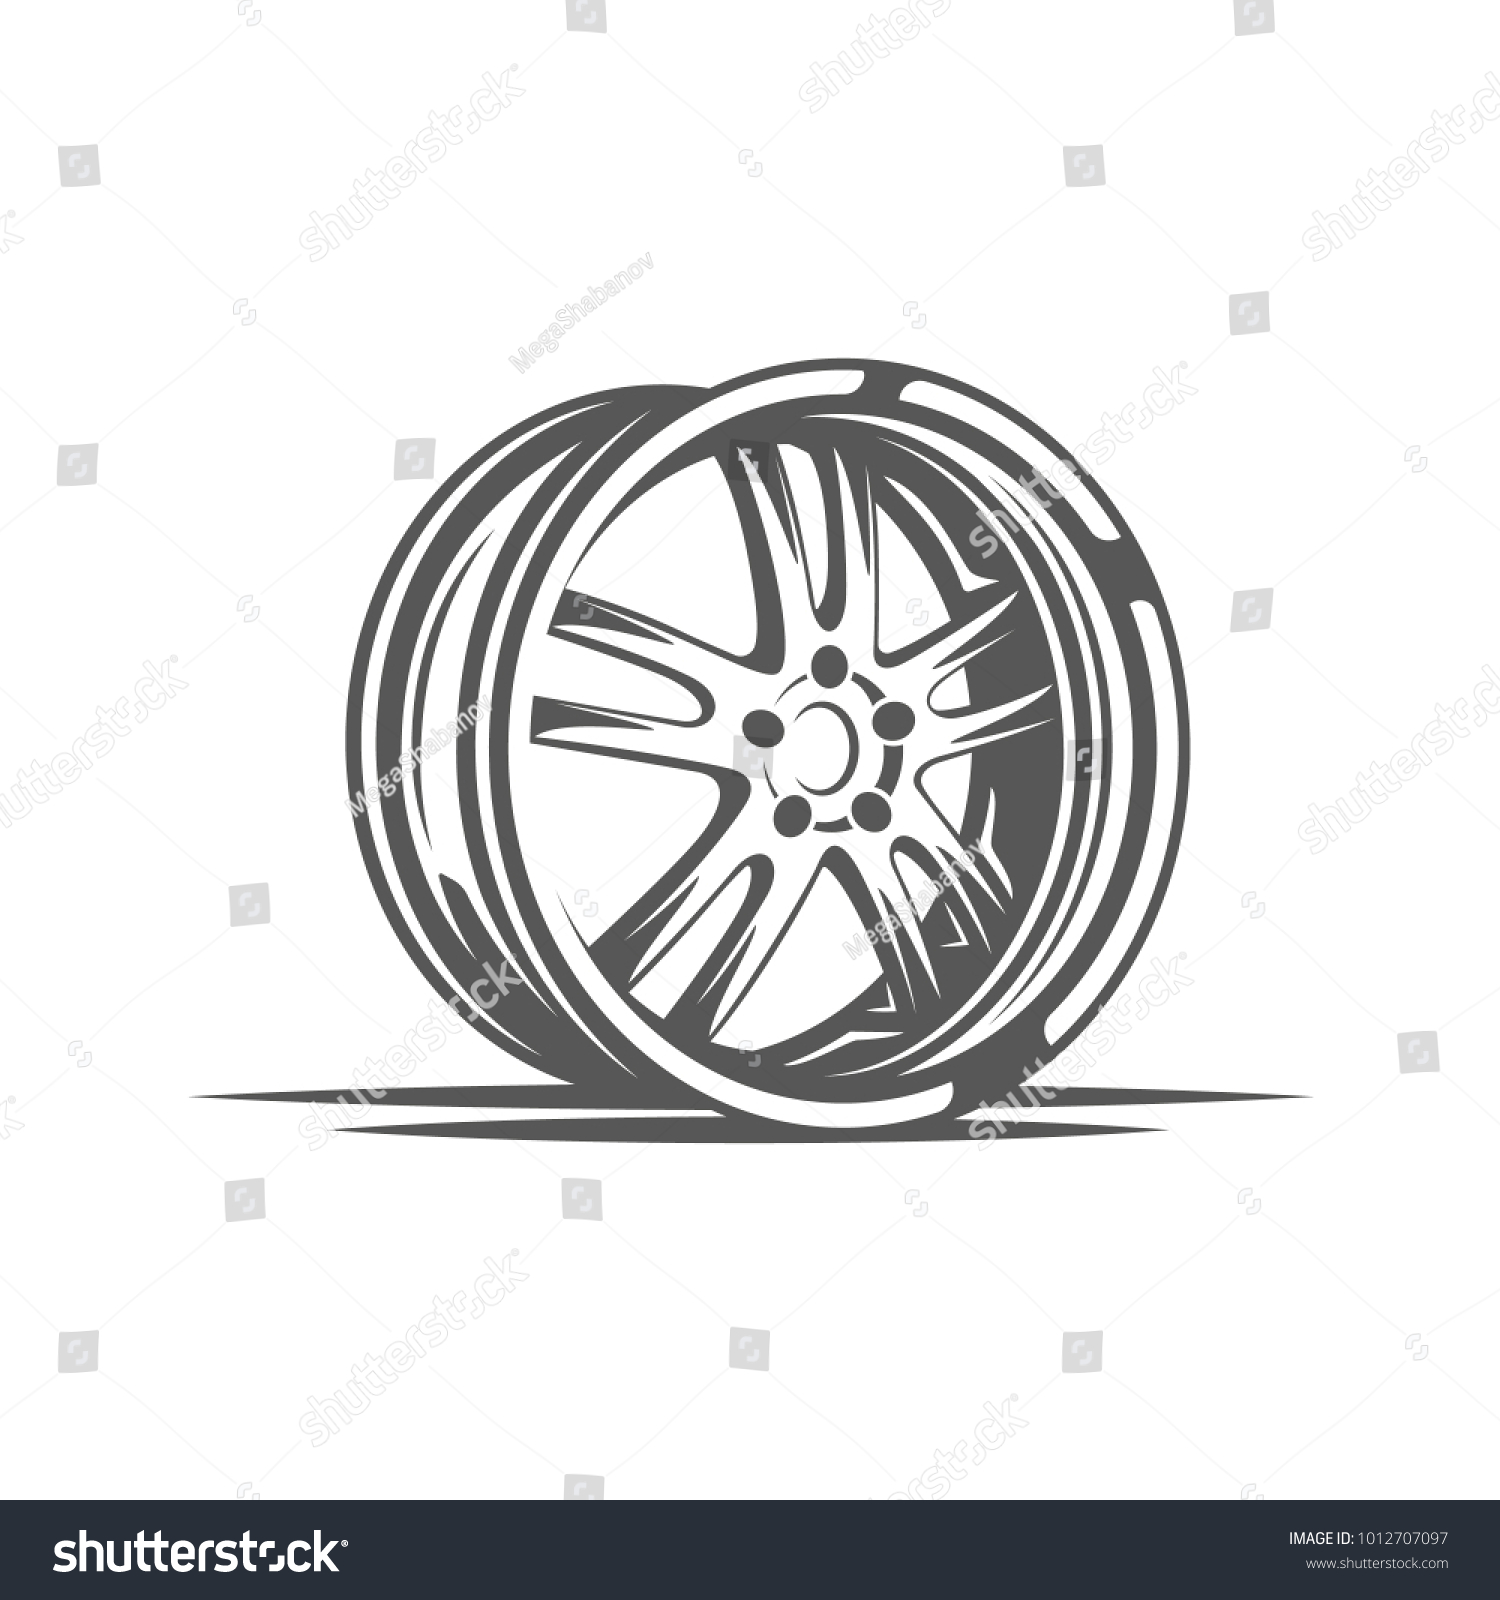 Element car service wheel isolated on stock vector 1012707097 element of the car service wheel isolated on white background symbol for car service biocorpaavc Choice Image